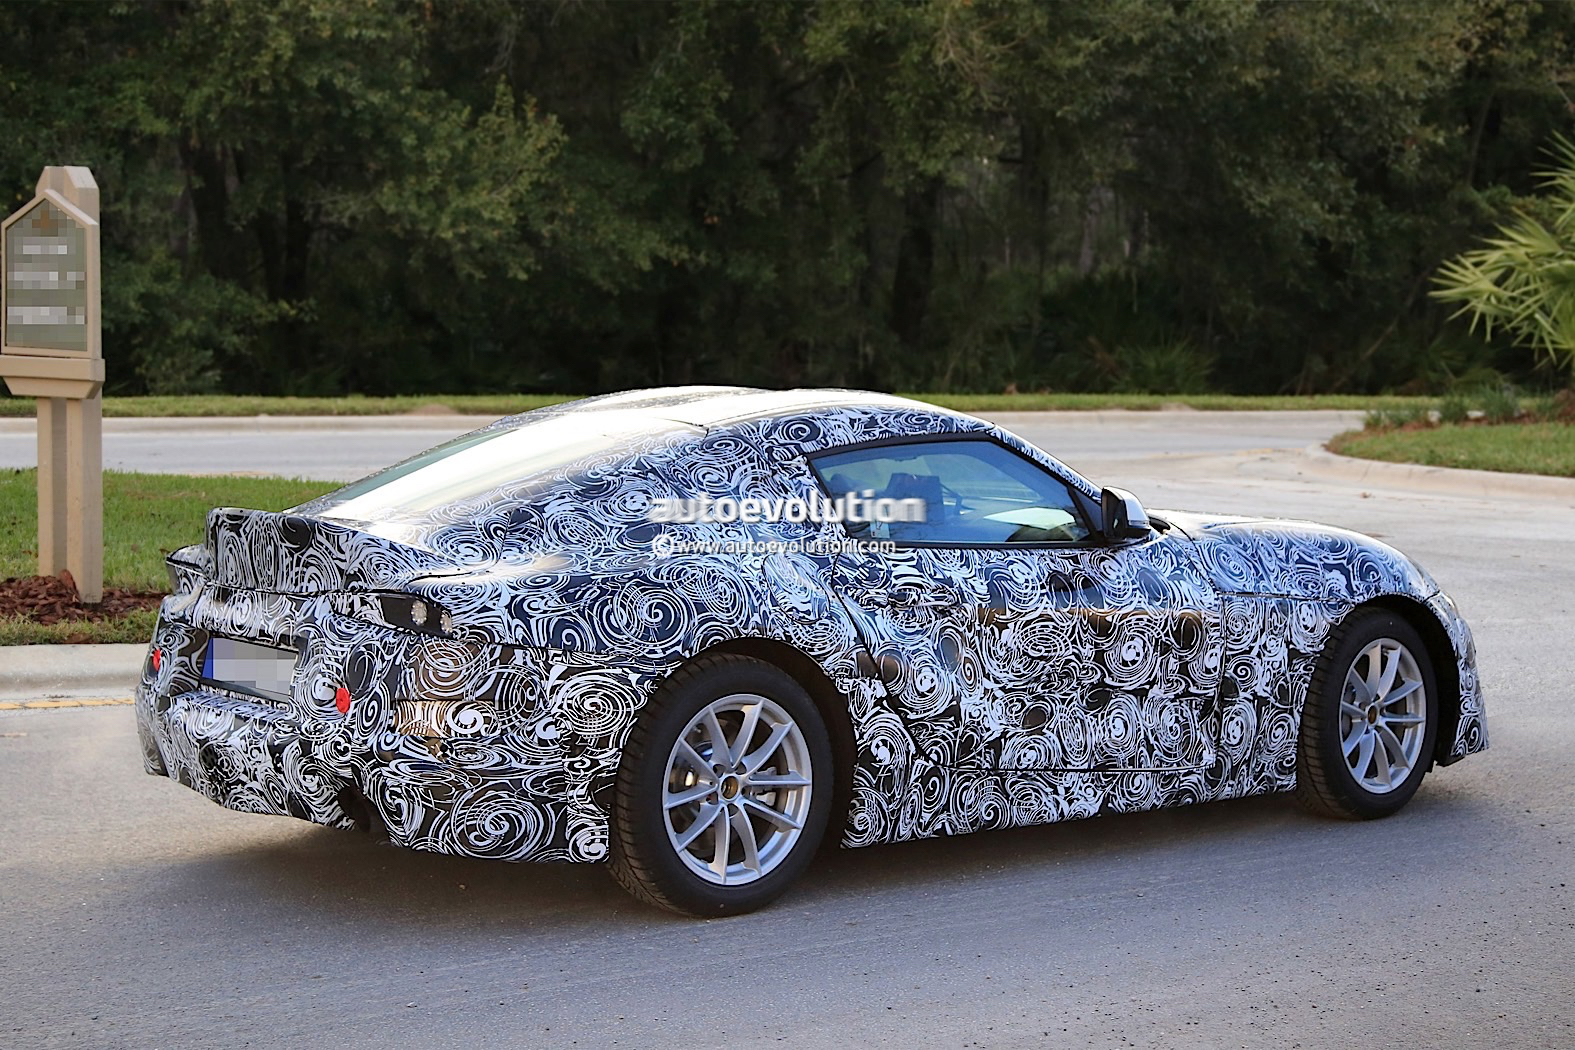 ... in Toyota history, the Supra is finally getting a modern successor